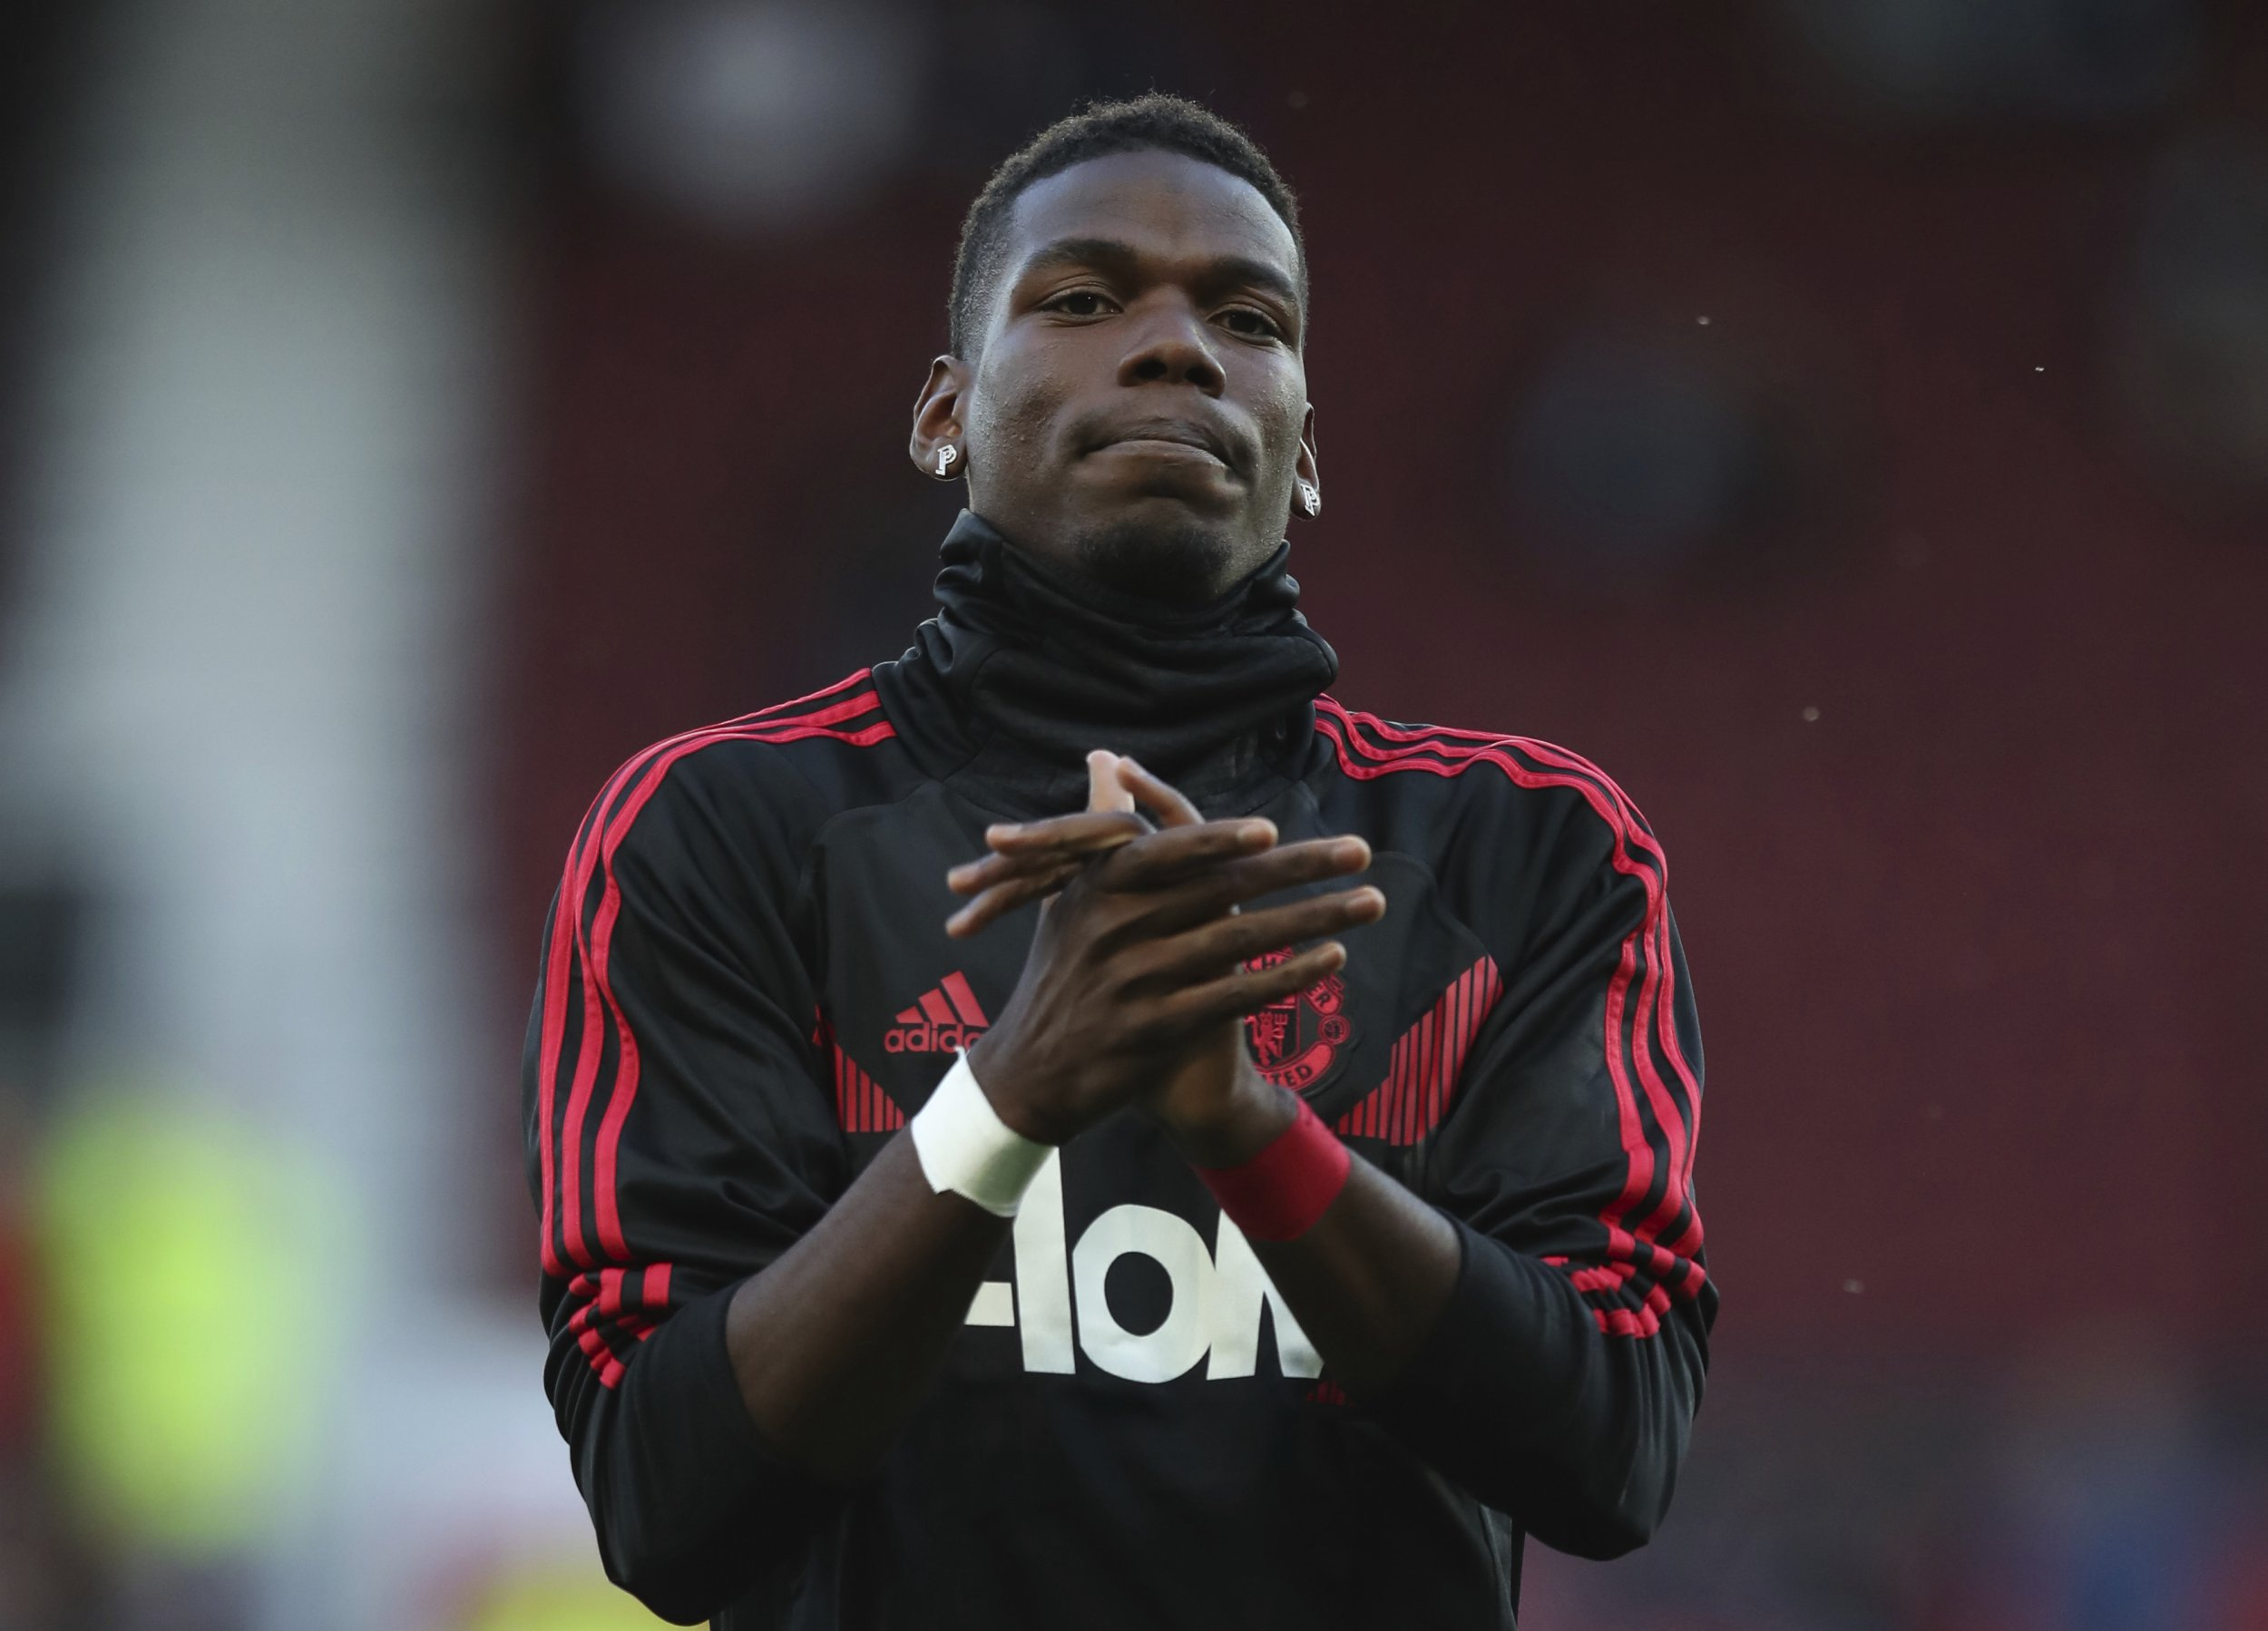 Manchester United's Paul Pogba applauds the fans as he takes part in the warm up prior to the start of the English Premier League soccer match between Manchester United and Leicester City at Old Trafford, in Manchester, England, Friday, Aug. 10, 2018. (AP Photo/Jon Super)